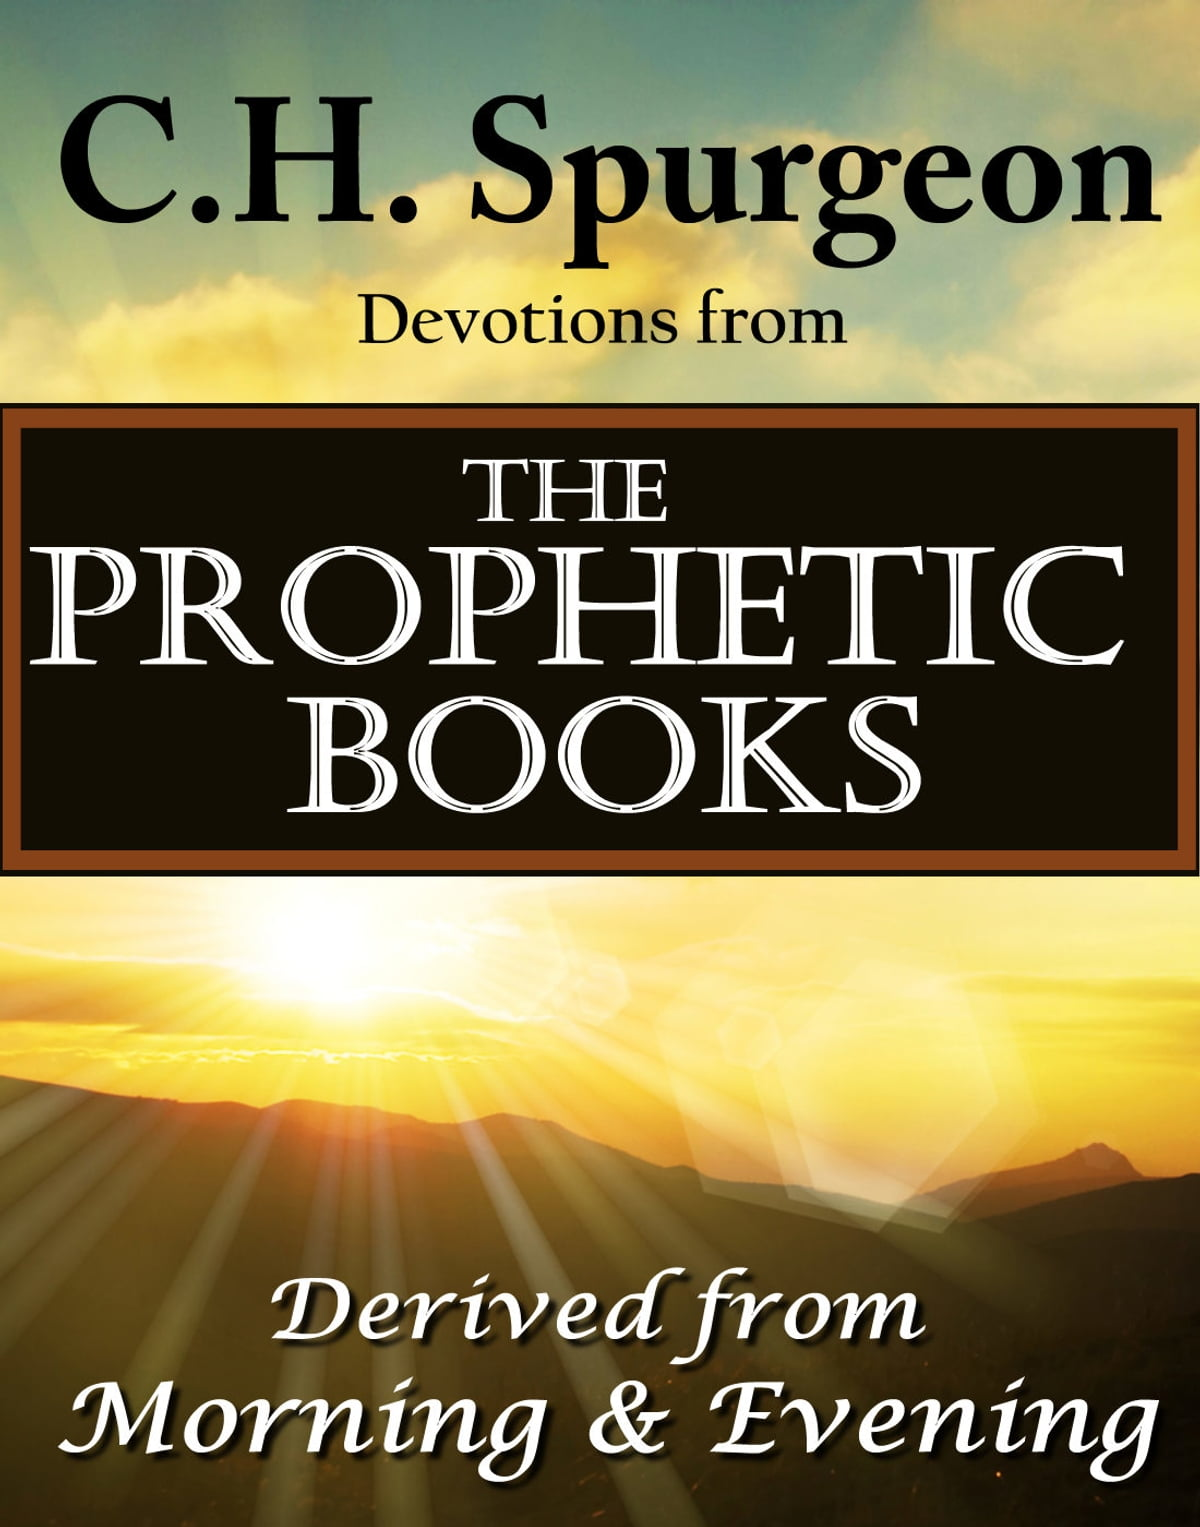 C.H. Spurgeon Devotions from the Prophetic Books of the Bible eBook by Charles  H. Spurgeon - 9781613394755 | Rakuten Kobo